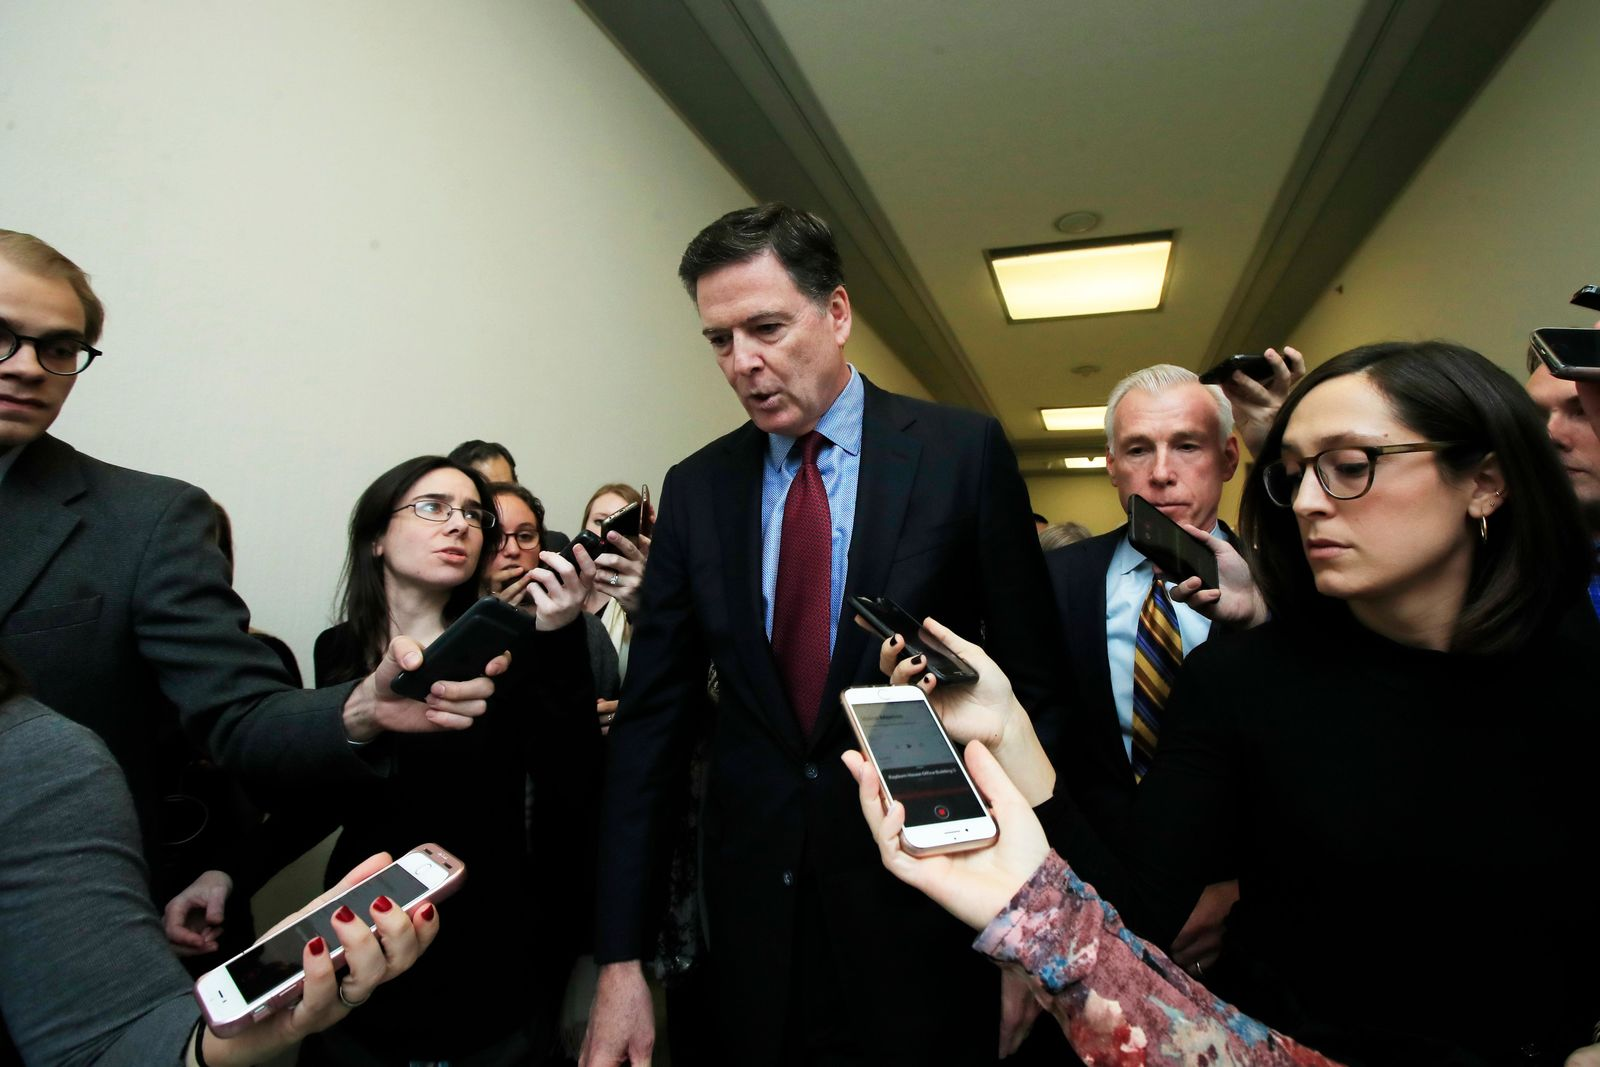 Former FBI Director James Comey speaks to reporters after testifying under subpoena behind closed doors before the House Judiciary and Oversight Committee on Capitol Hill in Washington, Friday, Dec. 7, 2018. (AP Photo/Manuel Balce Ceneta)